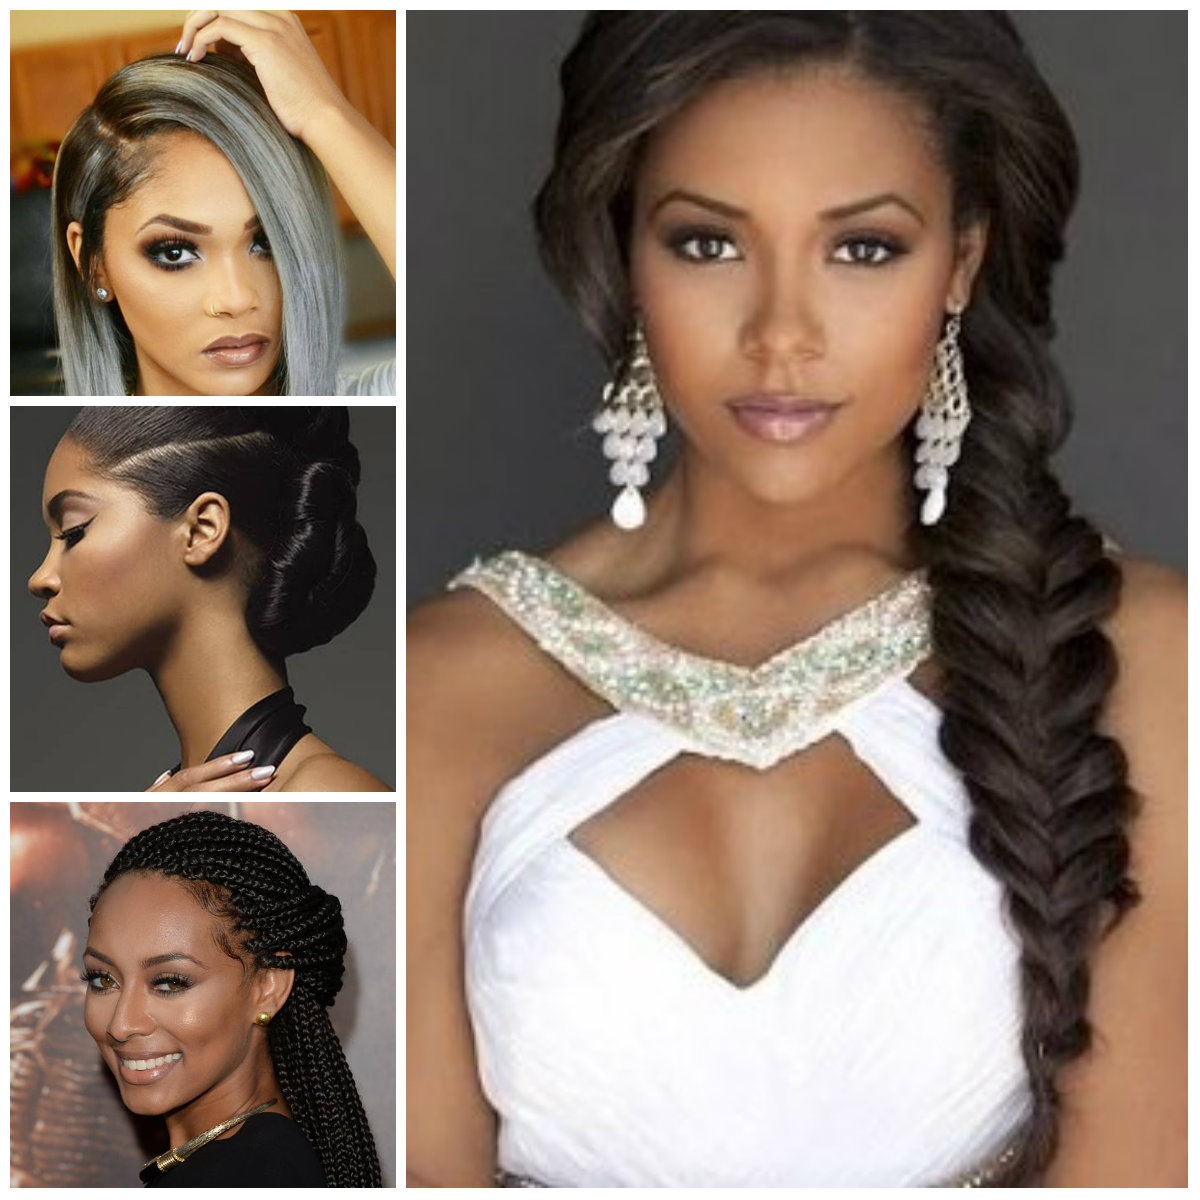 """Elegant hairstyles for black women for 2019 """"width ="""" 500 """"height ="""" 500 """"data-jpibfi-post-excerpt ="""" """"data-jpibfi-post-url ="""" http://www.frisuren-2018.com/elegante -frisuren-for-black-women-for-2019 / """"data-jpibfi-post-title ="""" Elegant Hairstyles for Black Women for 2019 """"data-jpibfi-src ="""" http://www.frisuren-2018.com/ wp-content / uploads / 2019/05 / Elegant hairstyles-for-black-women-for-2019.jpg """"/></p> <p>They are ready for experiments to find the best shades that fit their face shapes. Recently, they have all broken clichés about pastel shades. If you are looking for new hairstyle ideas, consider the following <strong>2019-2020 black women elegant hairstyles</strong> spiced up with the coolest colors.<span id="""